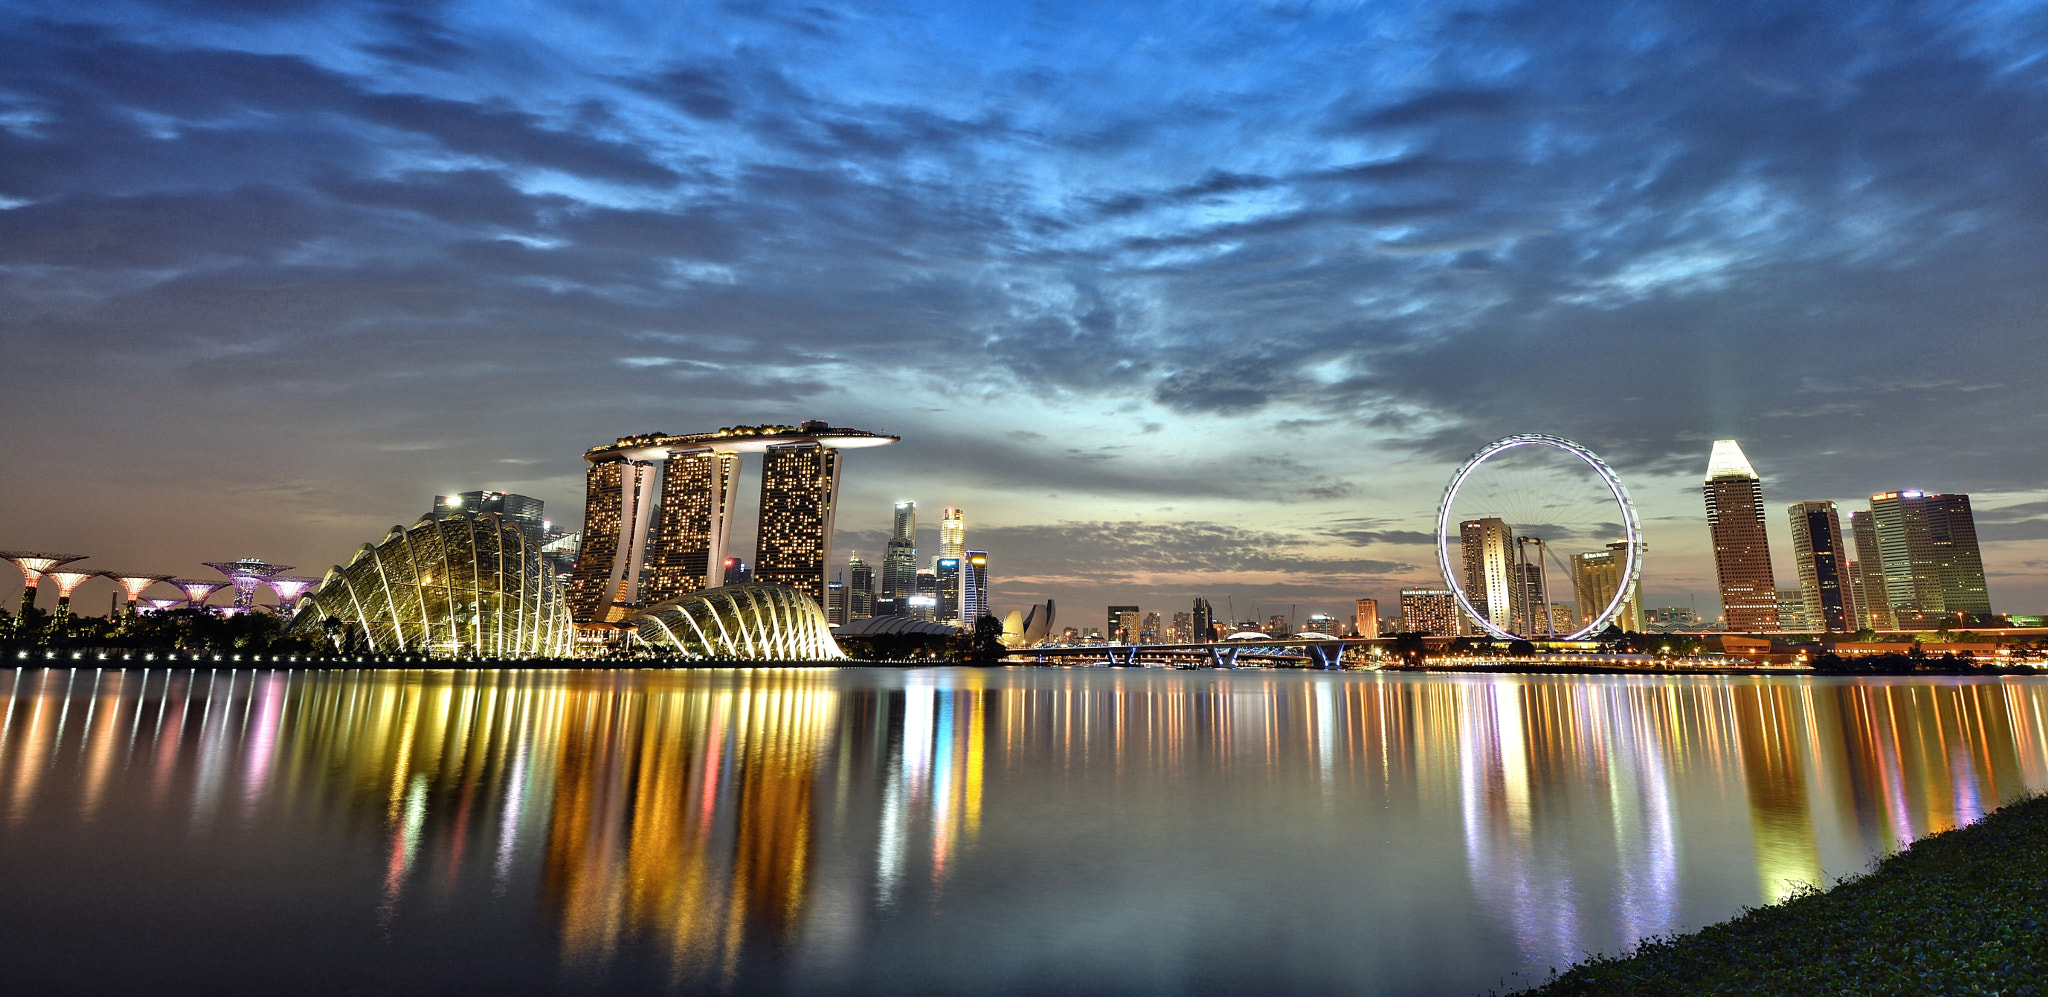 Photograph Marina reload by whopaintdsky  on 500px